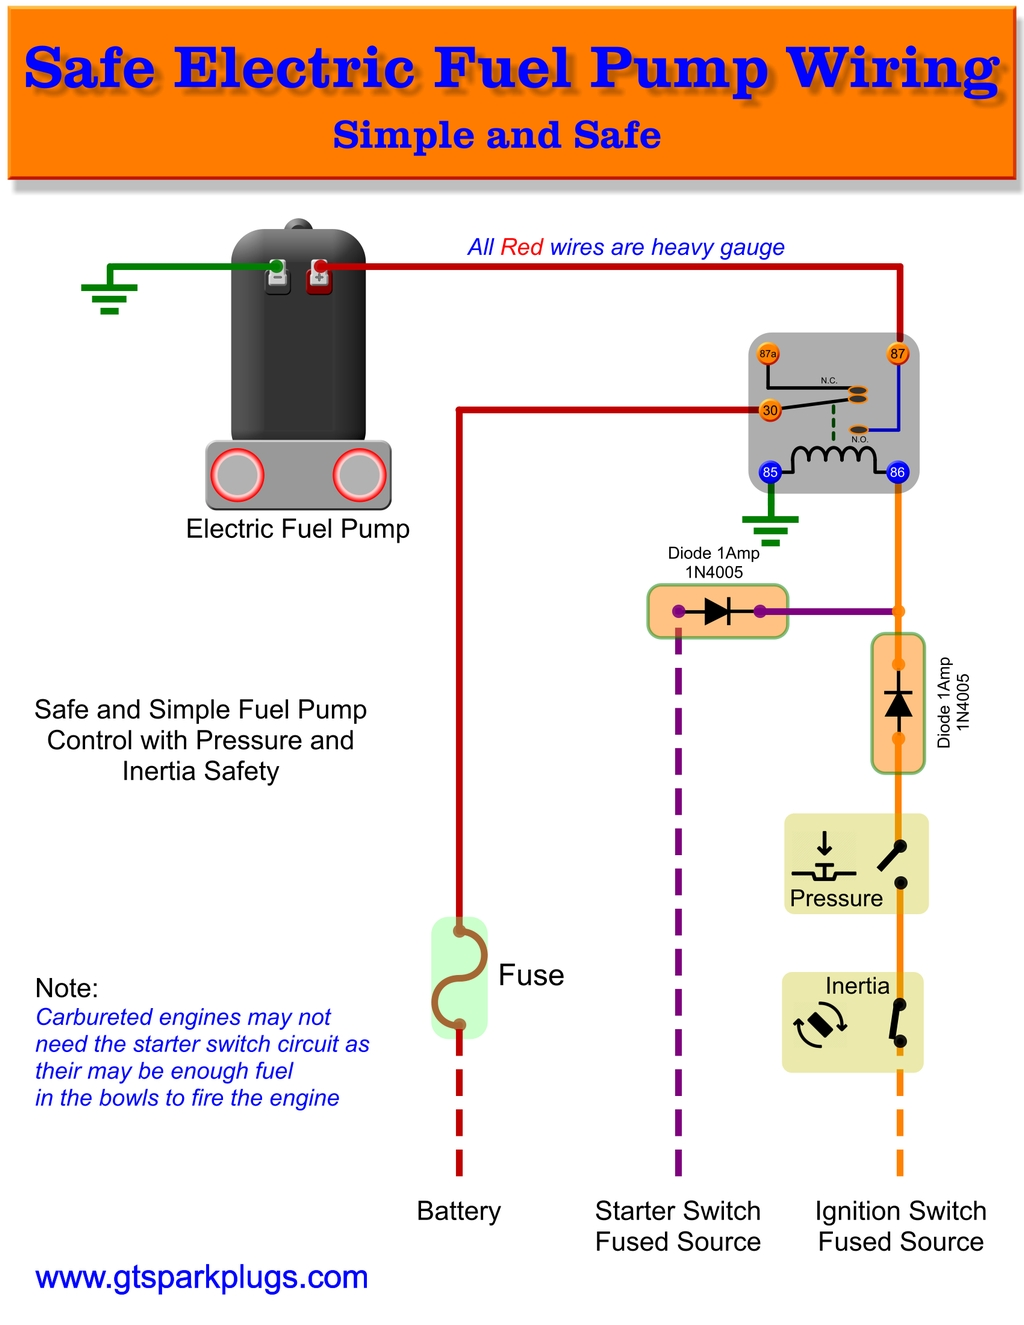 Electric Fuel Pump Wiring Diagram | GTSparkplugs | Pump Wire Schematics |  | GTSparkplugs